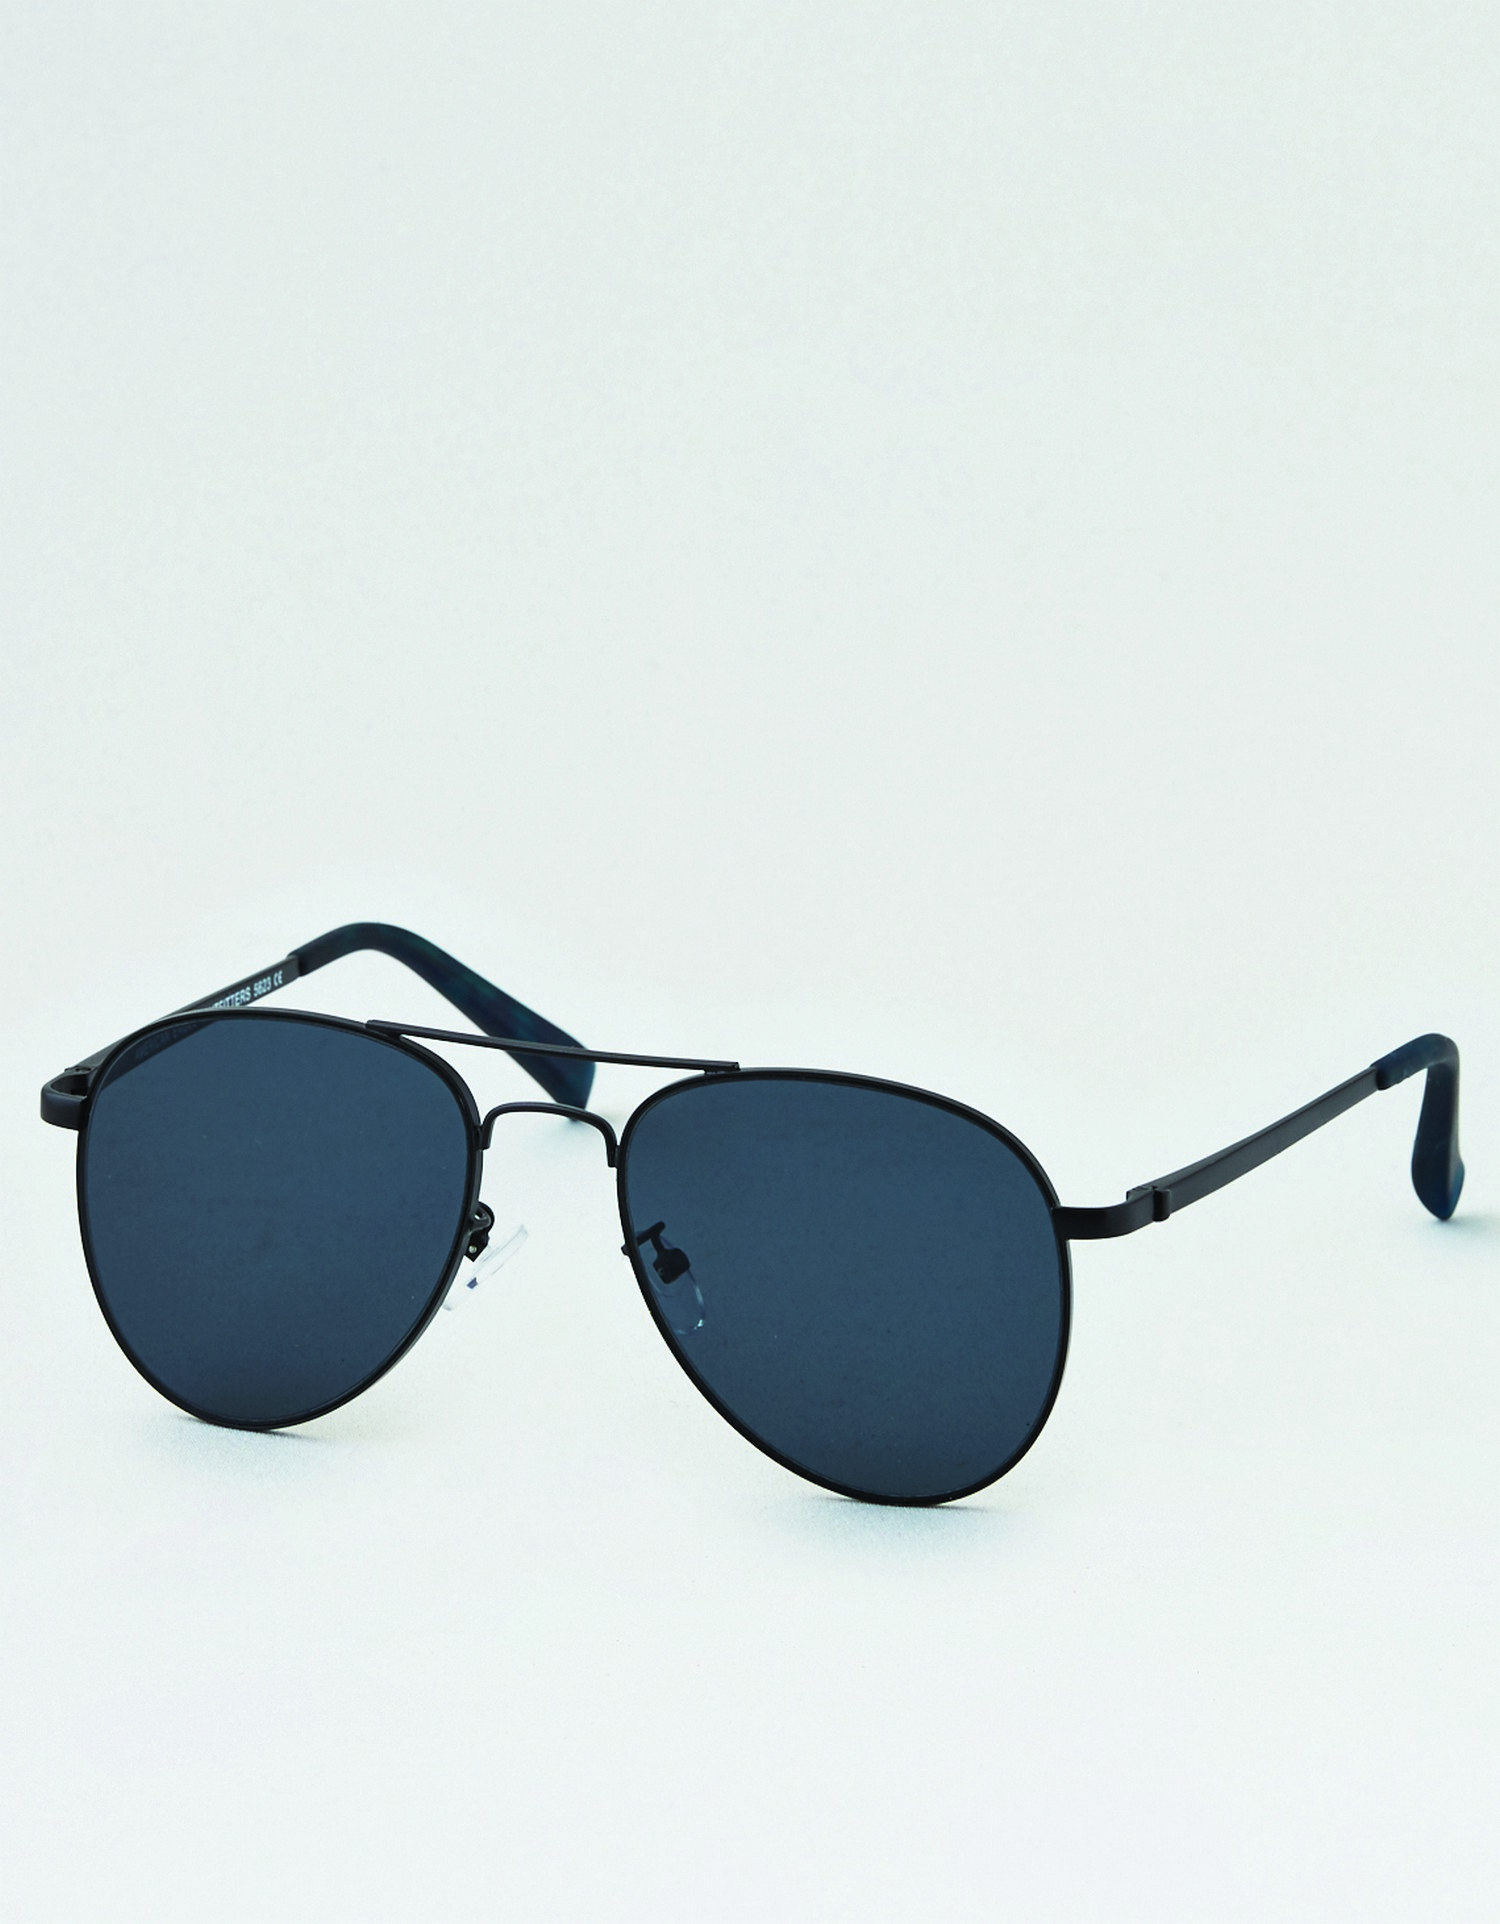 AE - M - Accessories - BLACK PILOT SUNGLASSES - solid color - wire frame - flat aviator black lens AL *Tracked